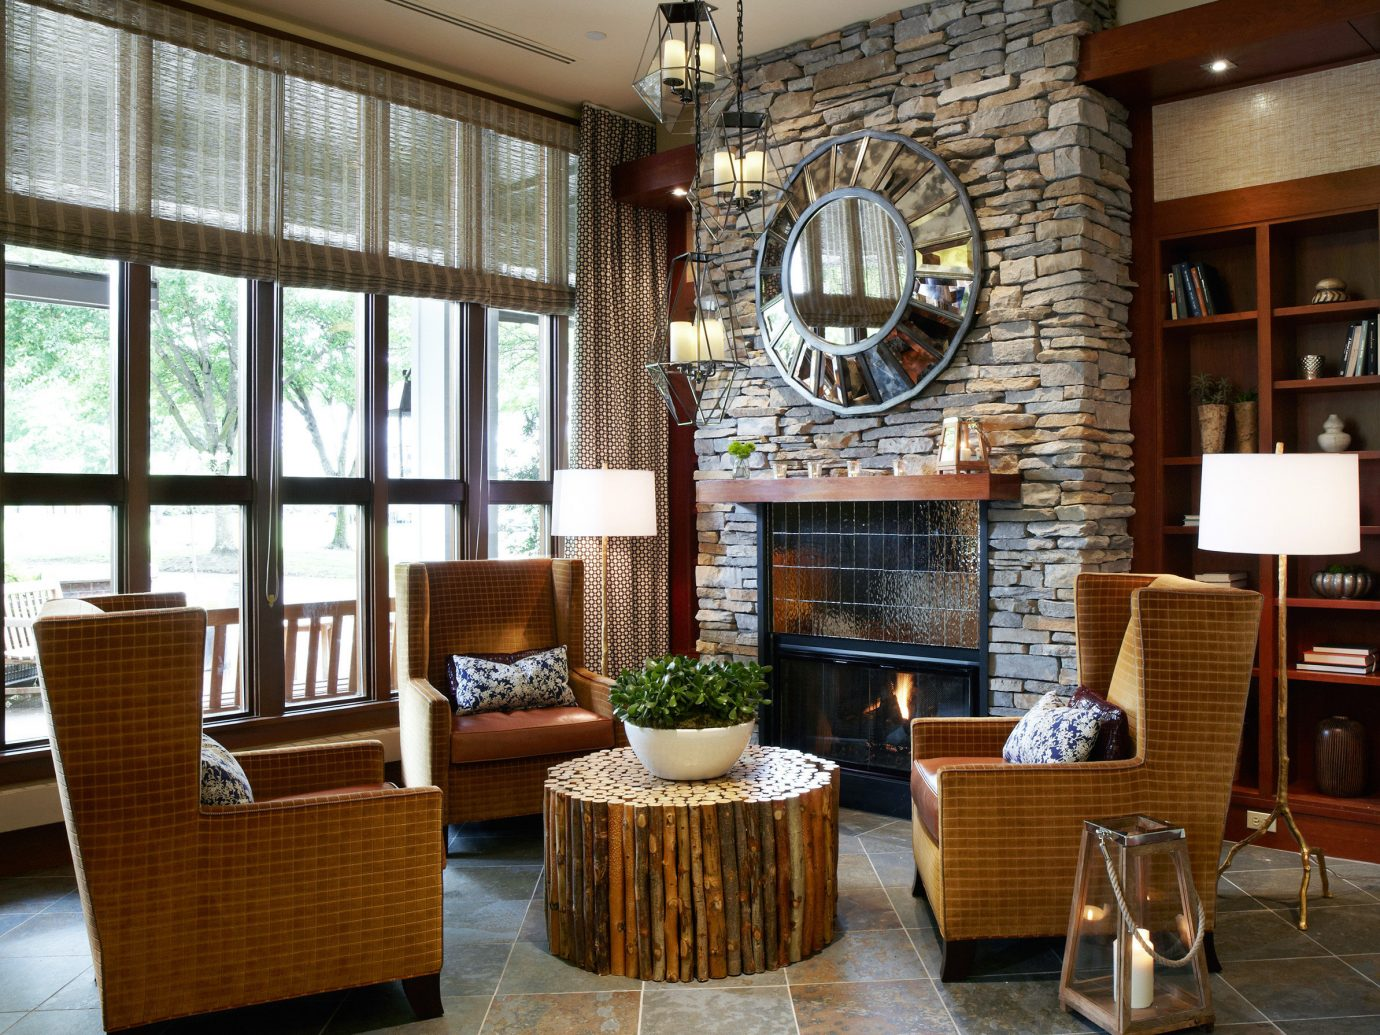 Boutique Hotels Drink Fireplace Hotels Lobby Lounge Luxury Travel Modern Scenic views Waterfront floor indoor Living room dining room chair window property living room estate ceiling home interior design hardwood cabinetry real estate condominium wood Design window covering furniture area